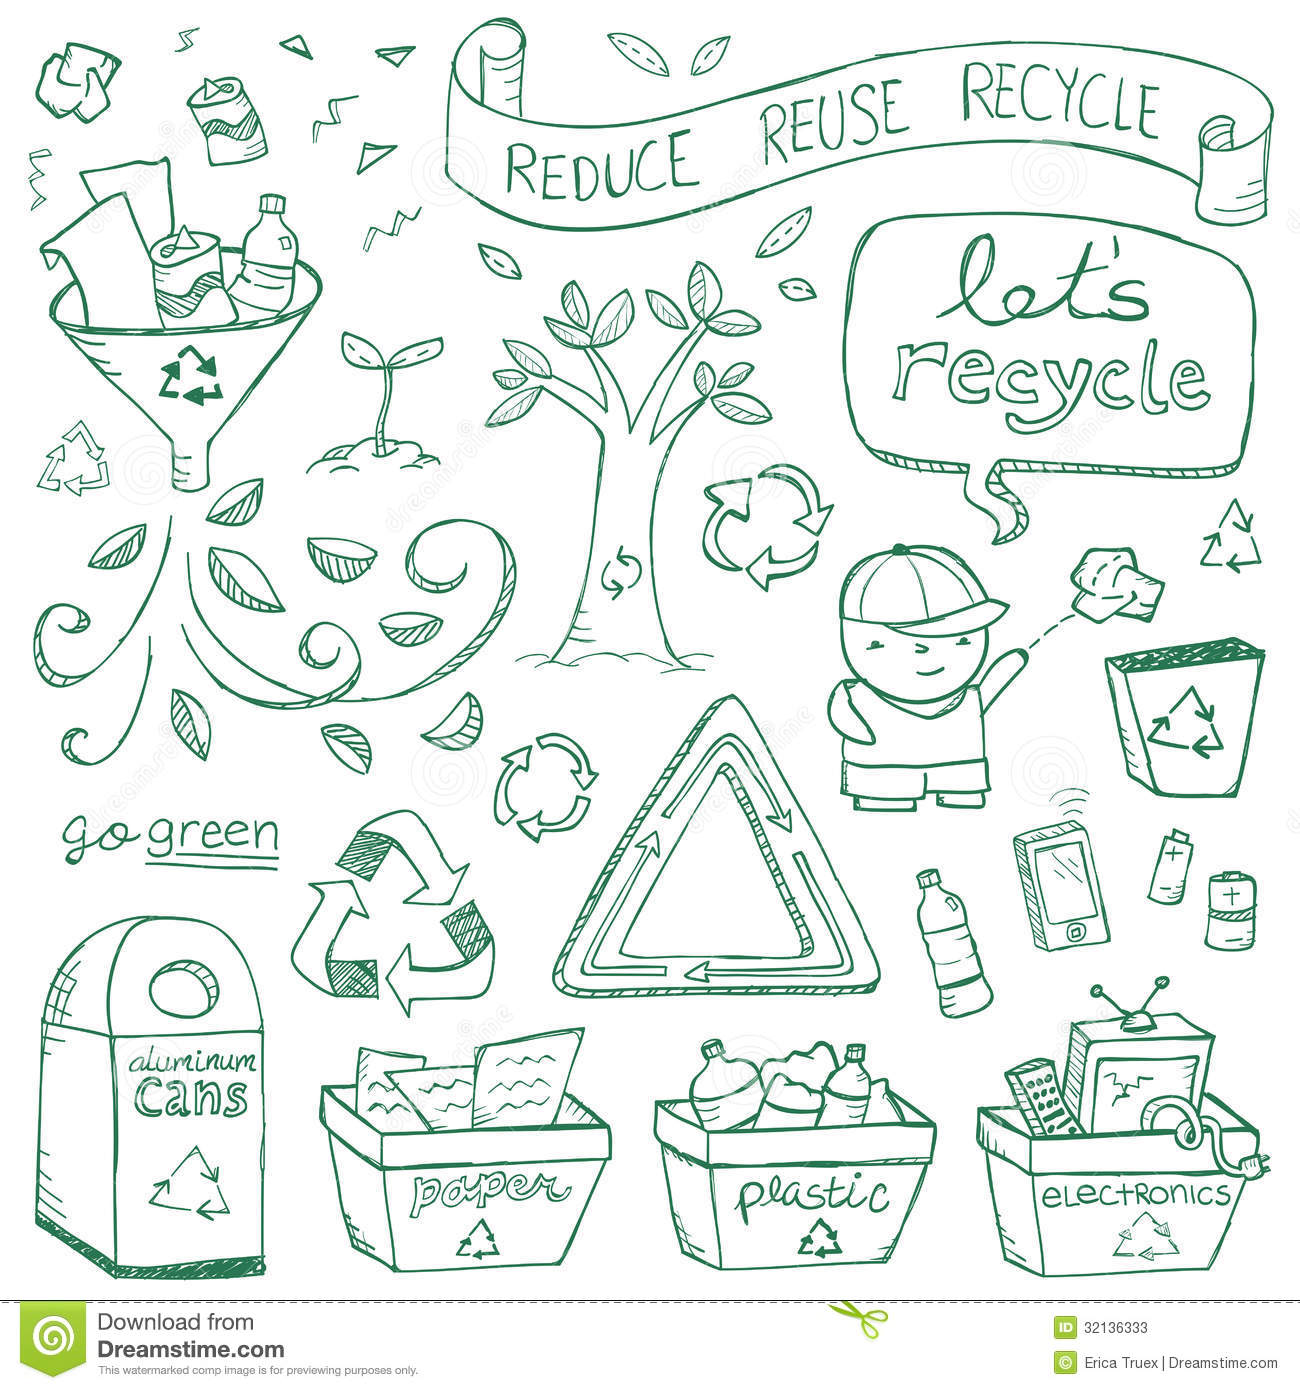 Recycling illustrations drawn in a doodled style.